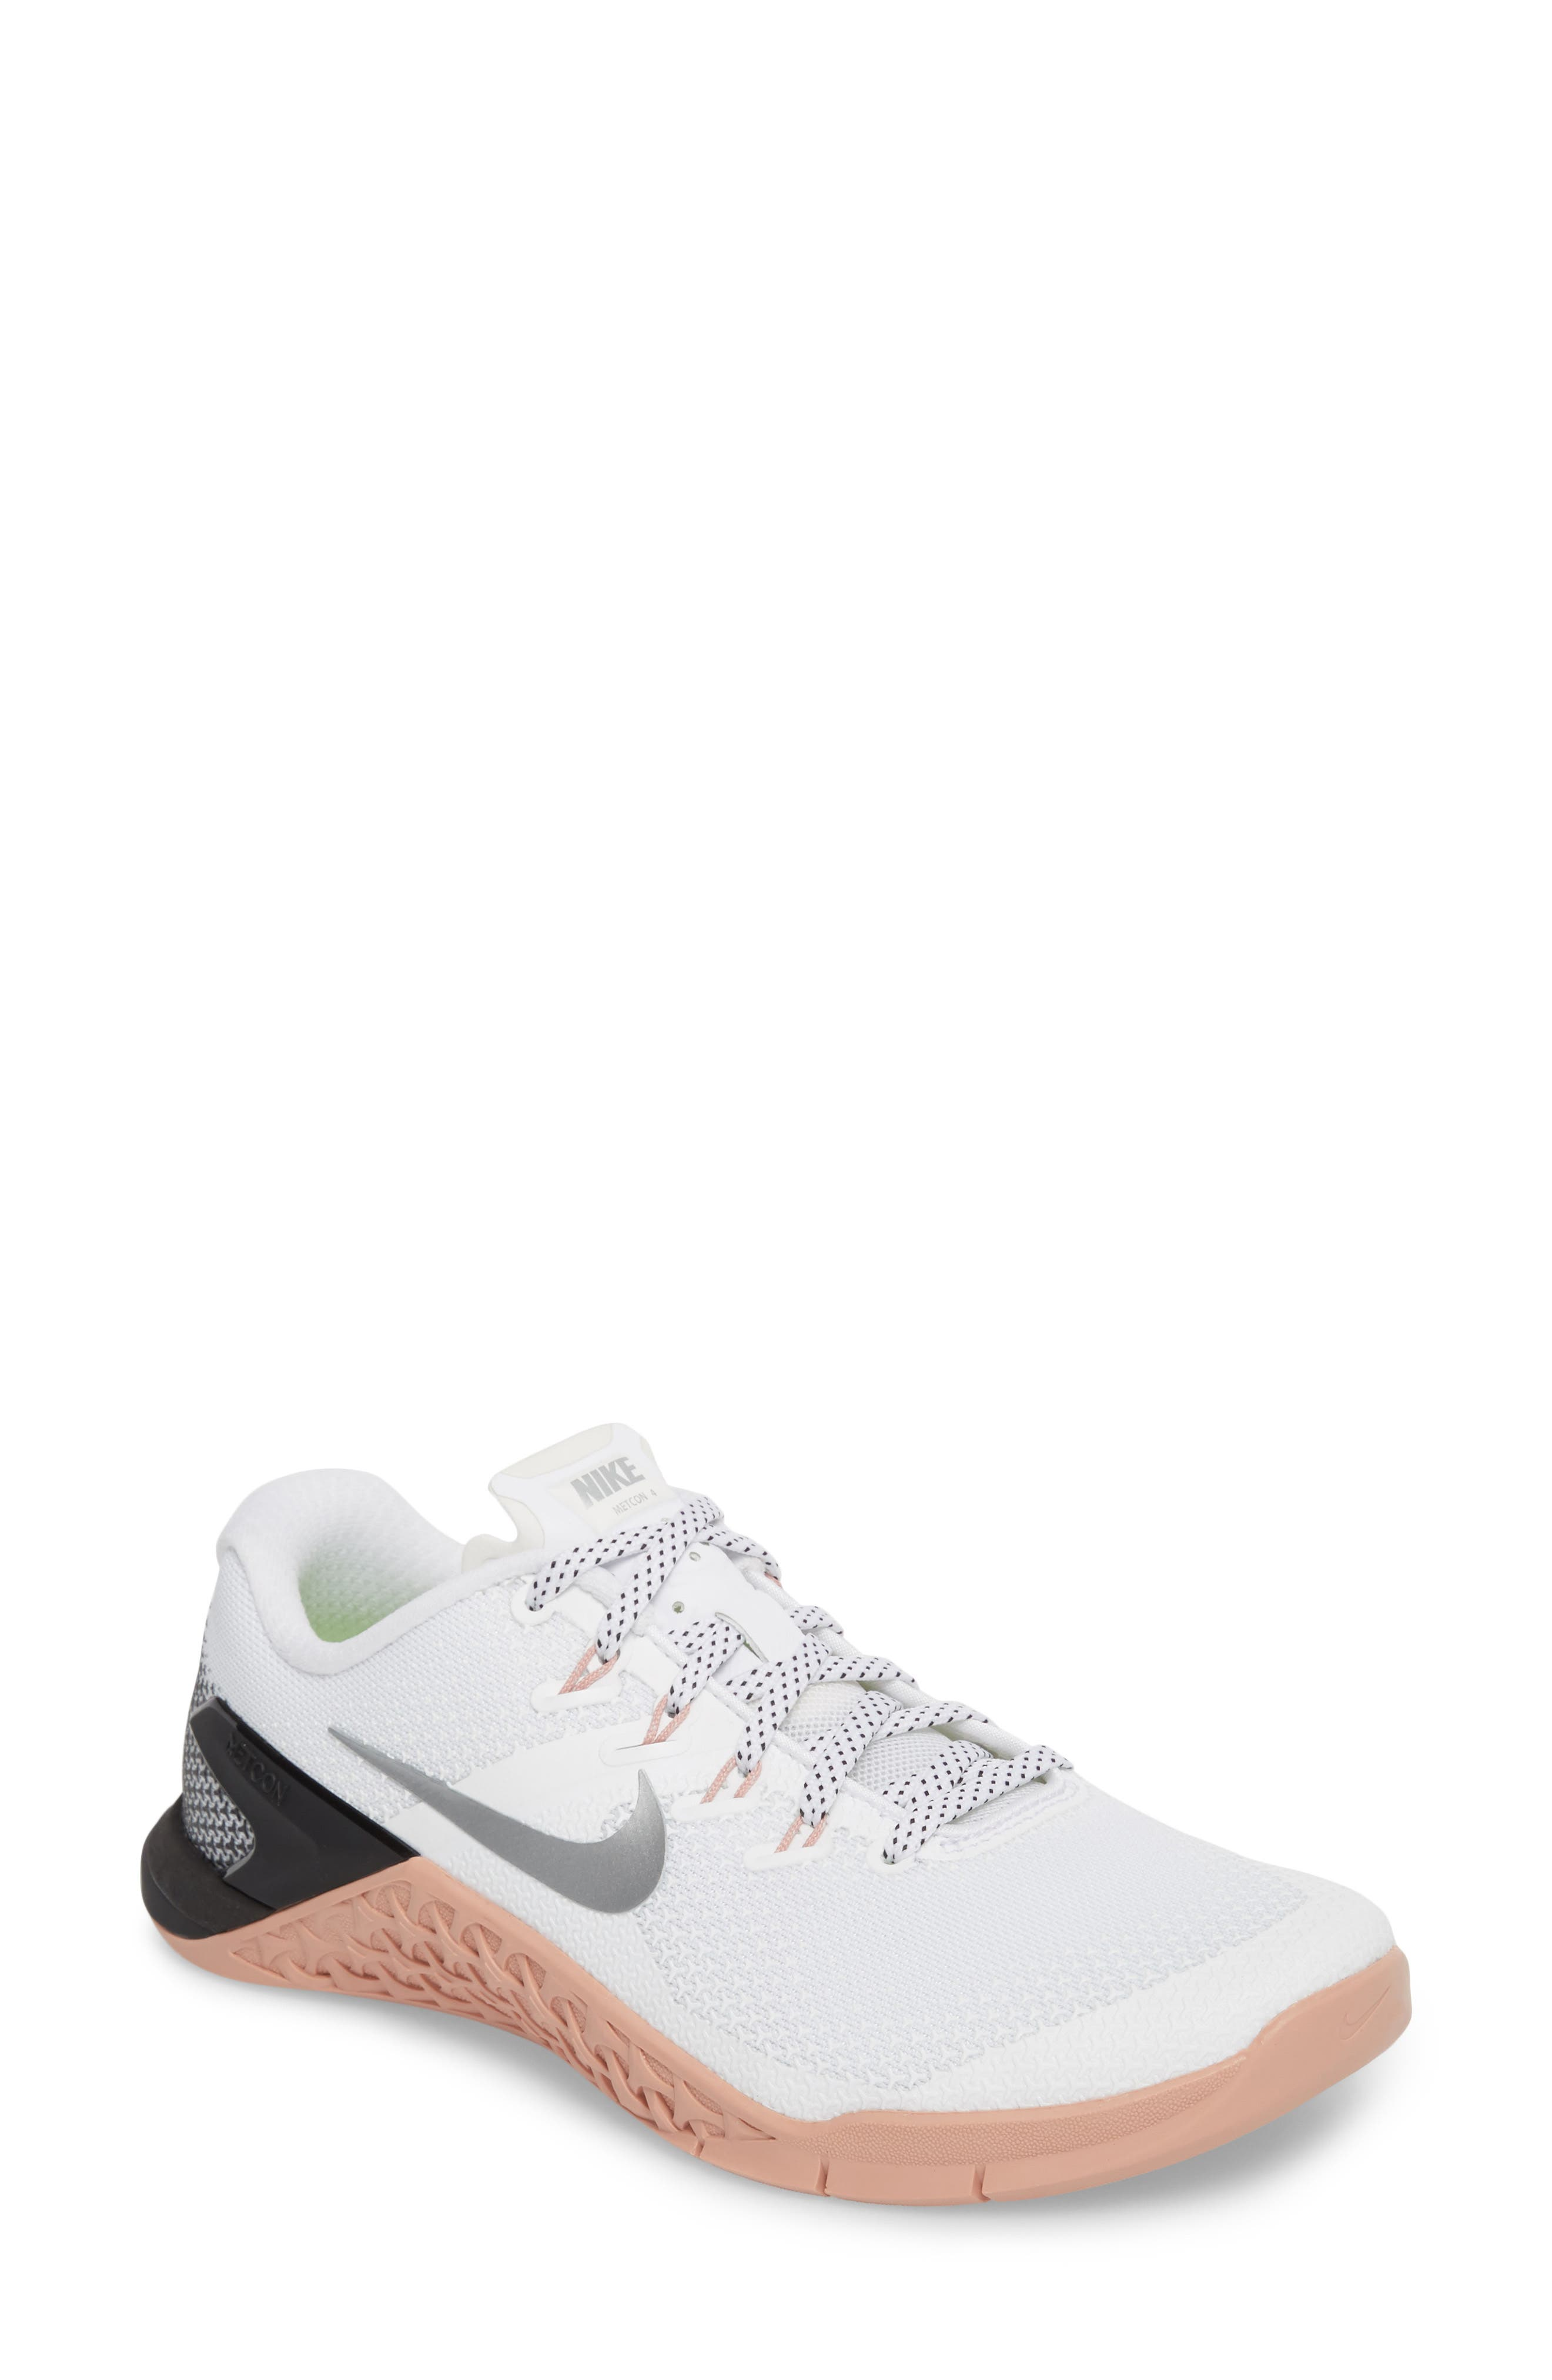 Metcon 4 Training Shoe,                             Main thumbnail 4, color,